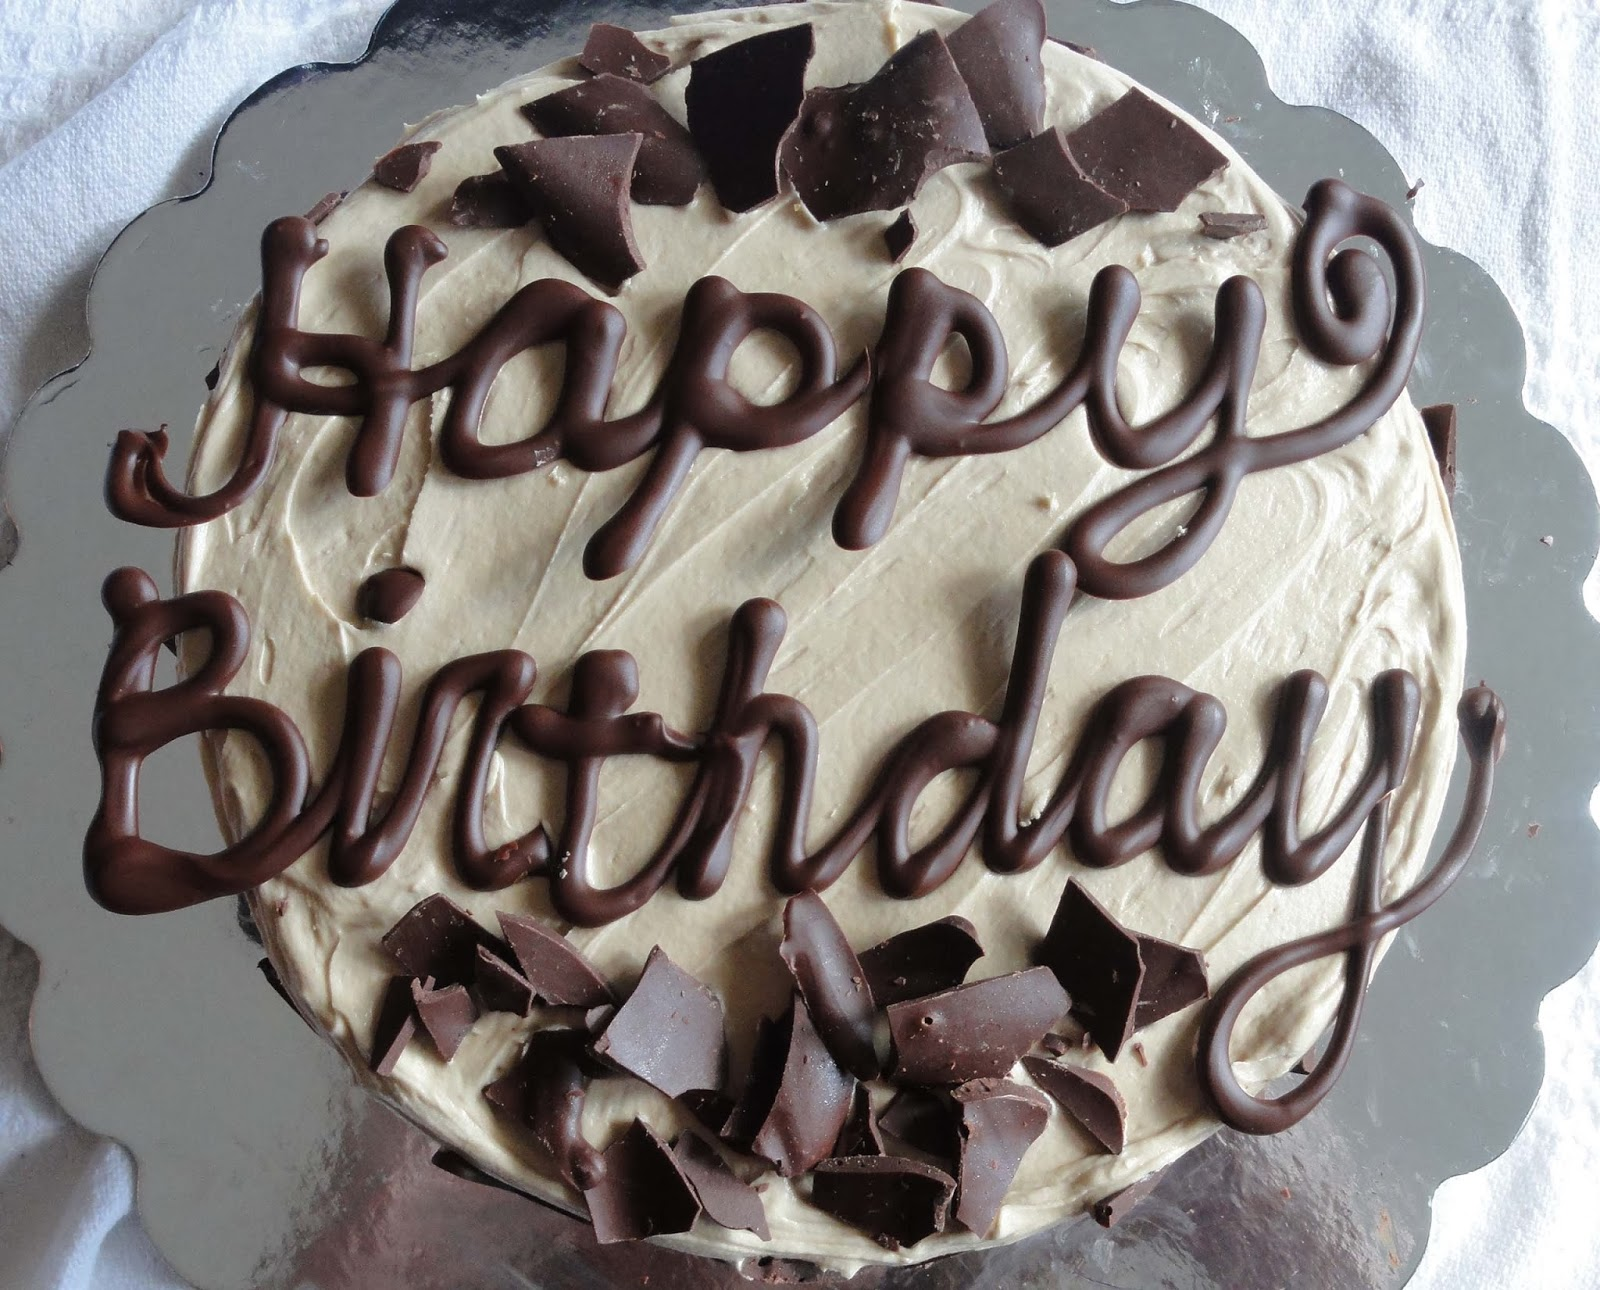 Happy-Birthday-Pure-Butter-Image-With-Chocolate-Writing-Image-HD